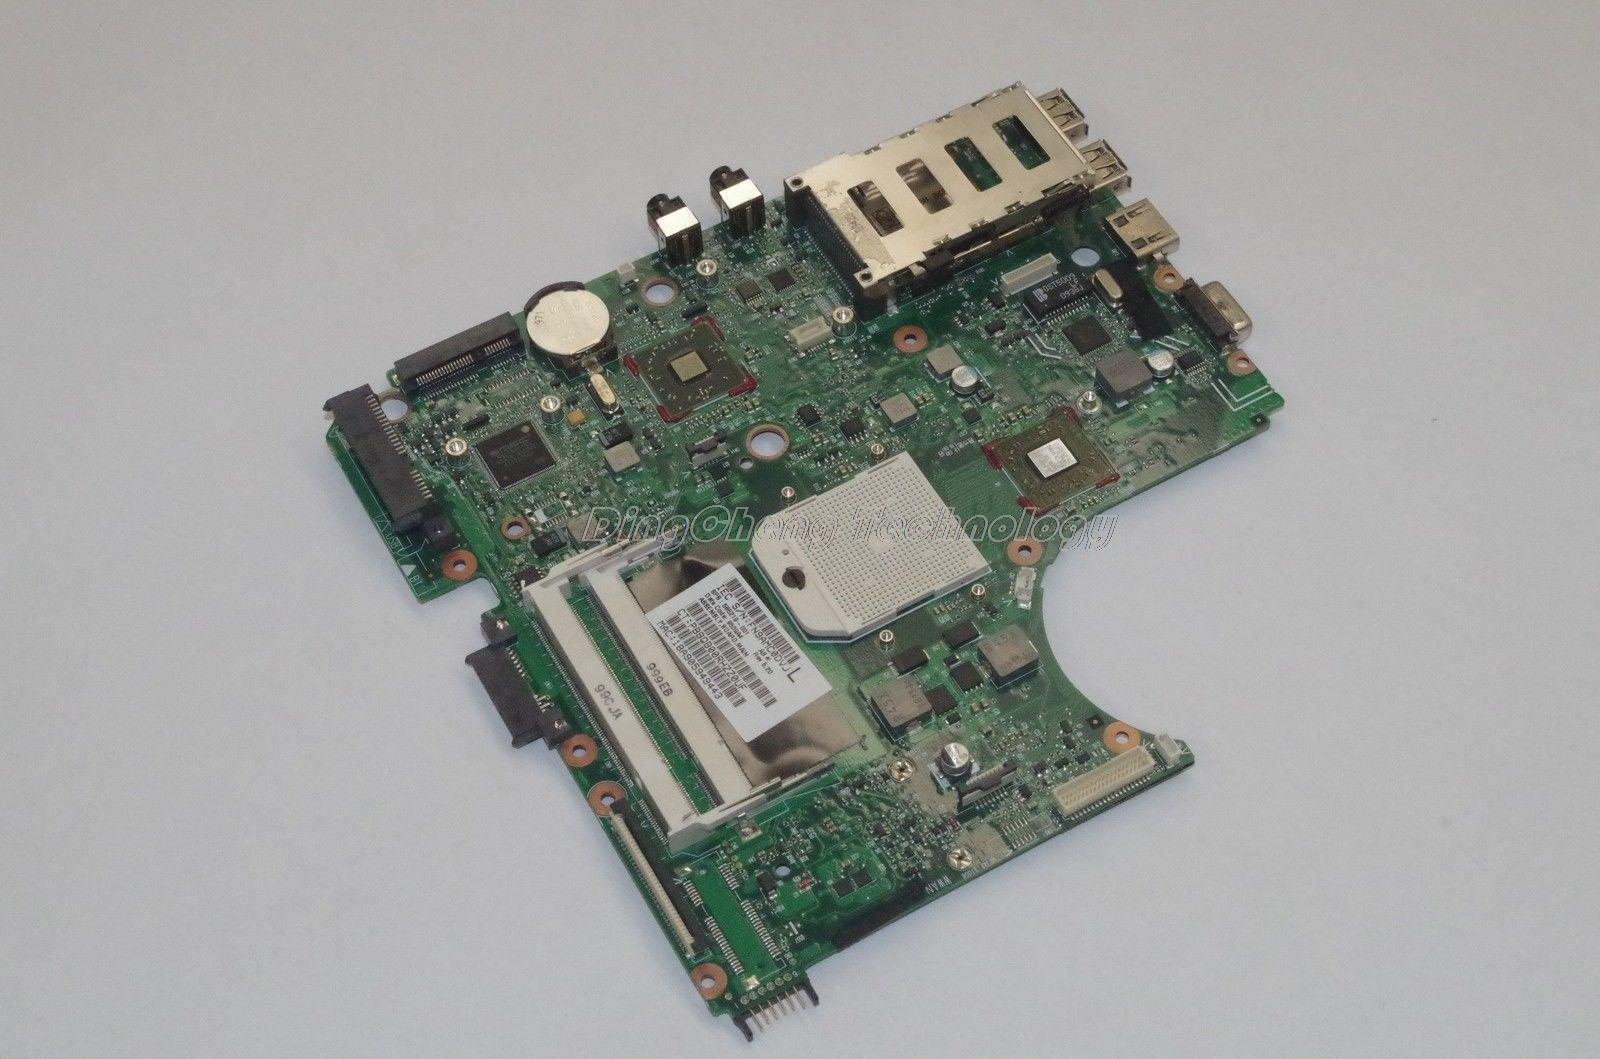 SHELI laptop Motherboard For hp 4515s 4415s 4416s 585219-001 for AMD cpu with integrated graphics card 100% fully tested OK 701764 001 701764 501 for hp 2000 notebook for hp 2000 laptop motherboard for amd e300 cpu with integrated 100